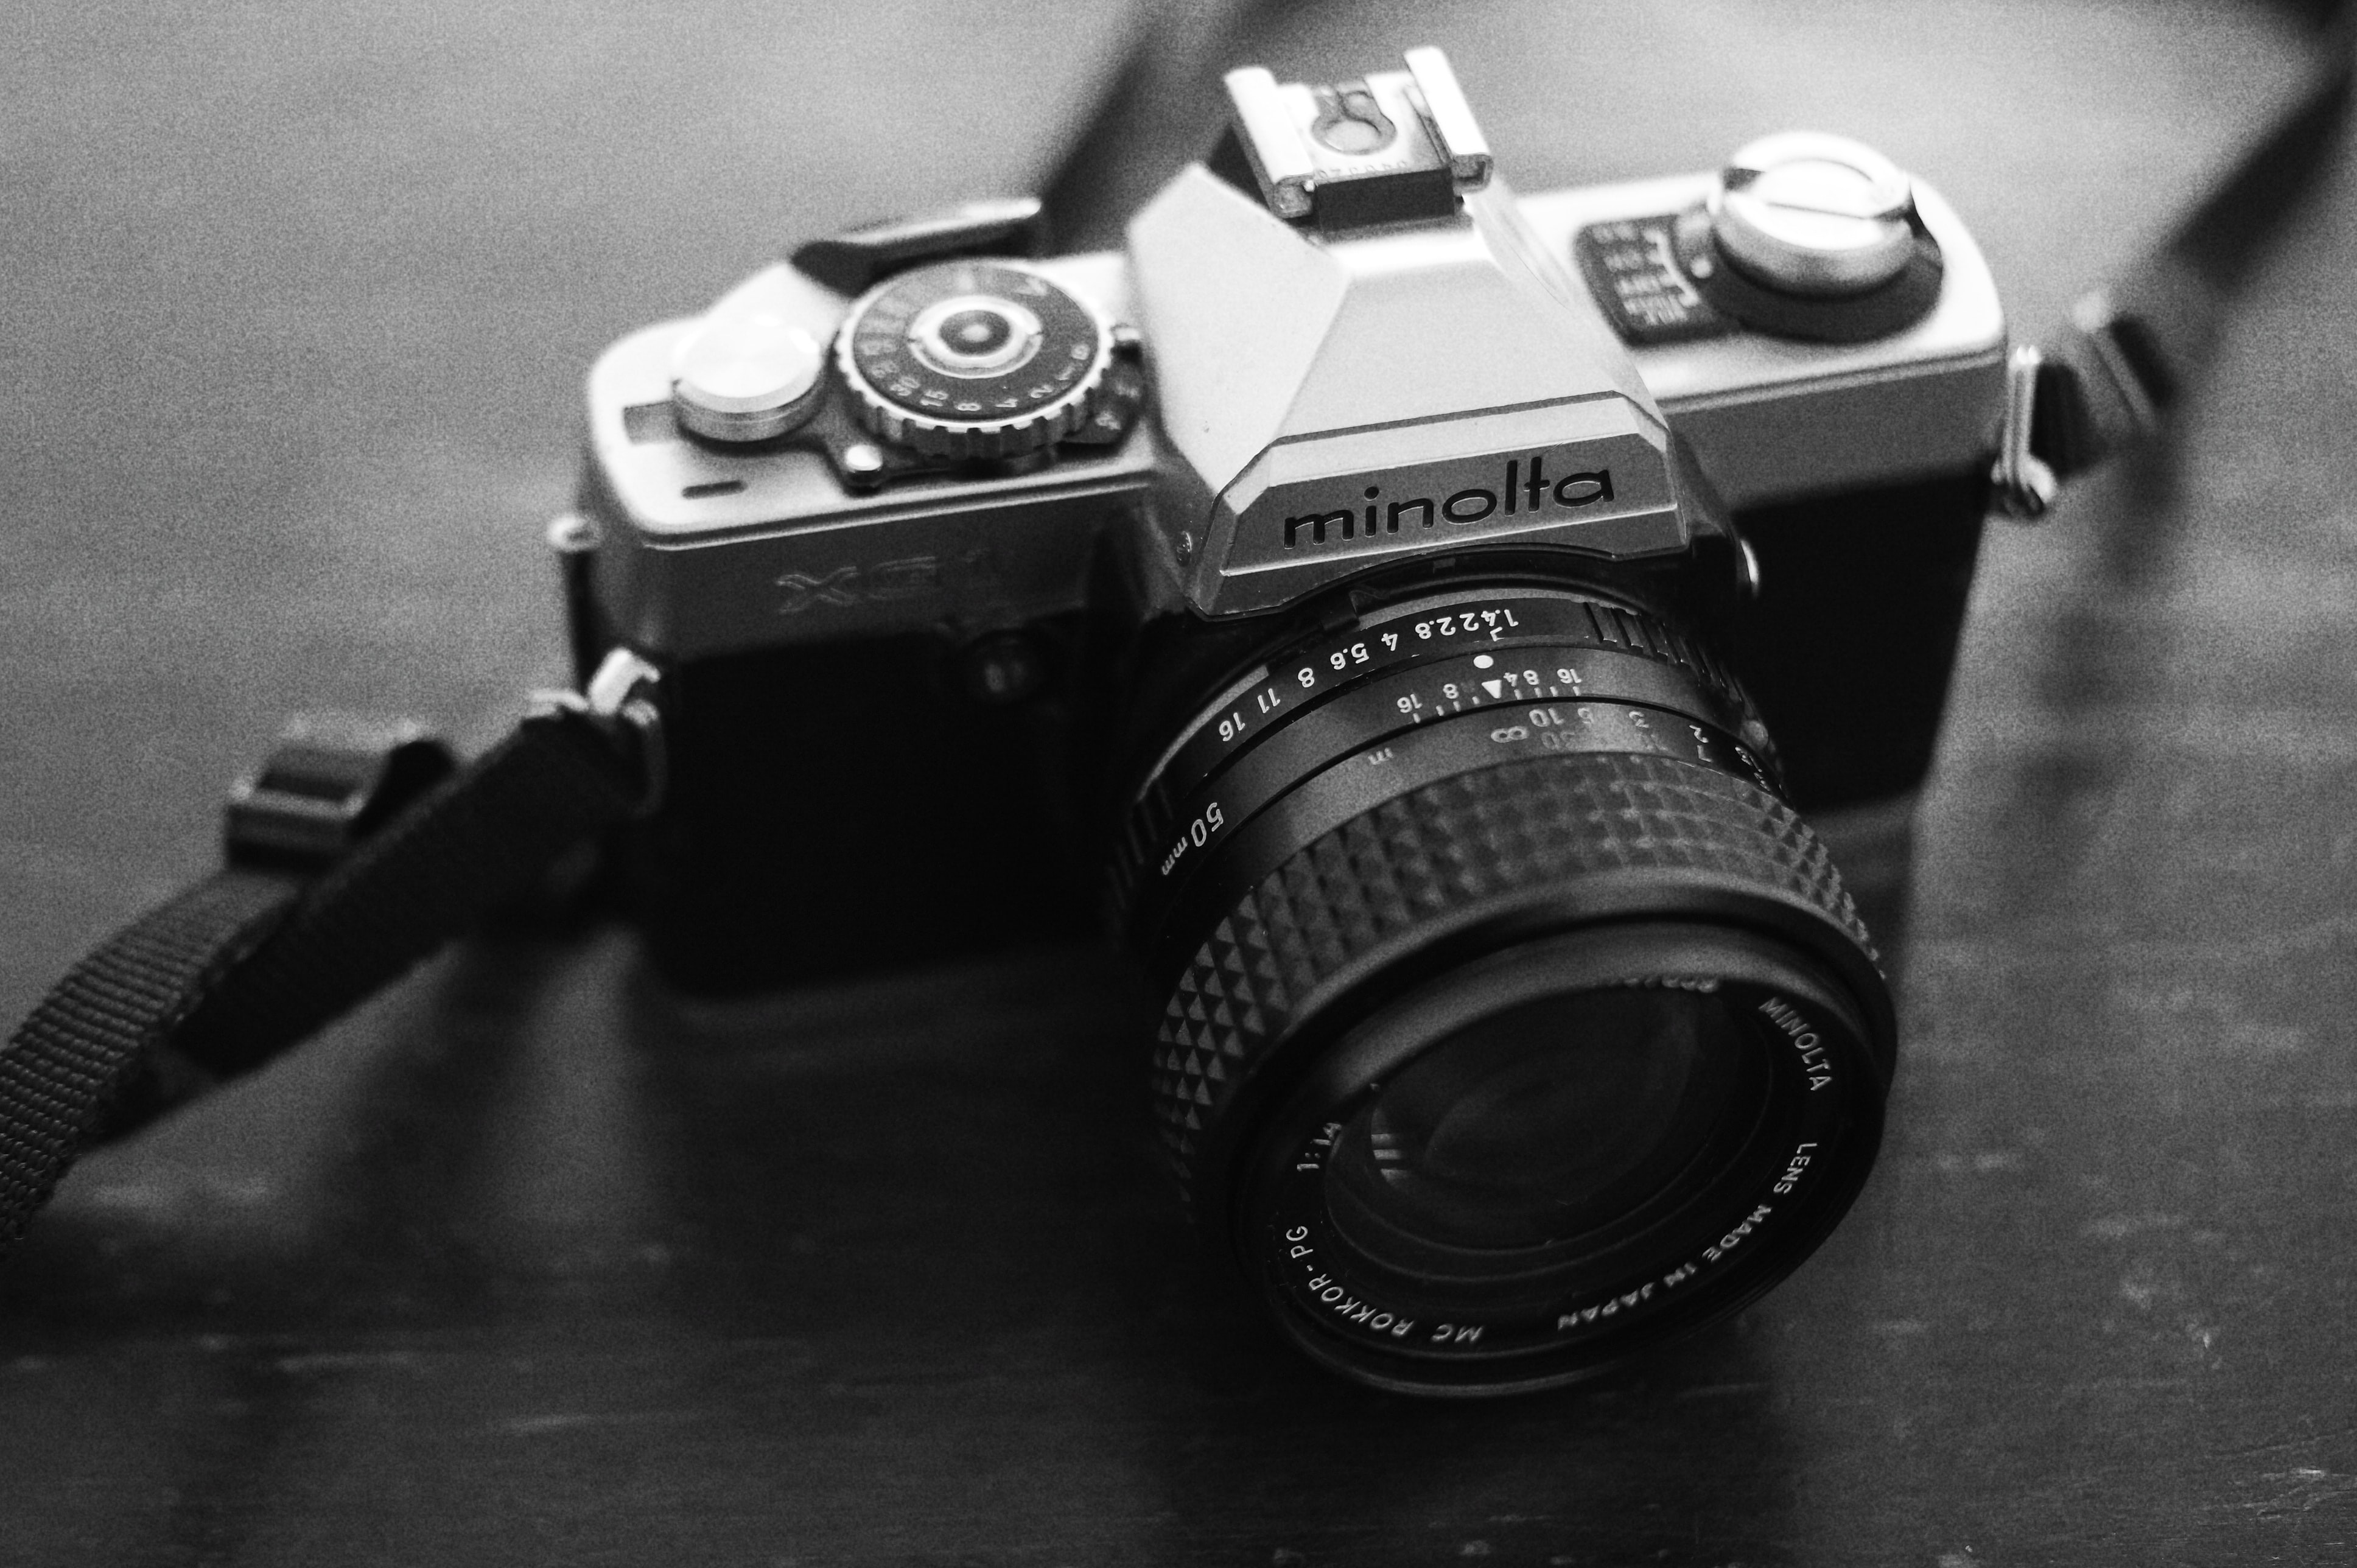 black and silver Minolta DSLR camera